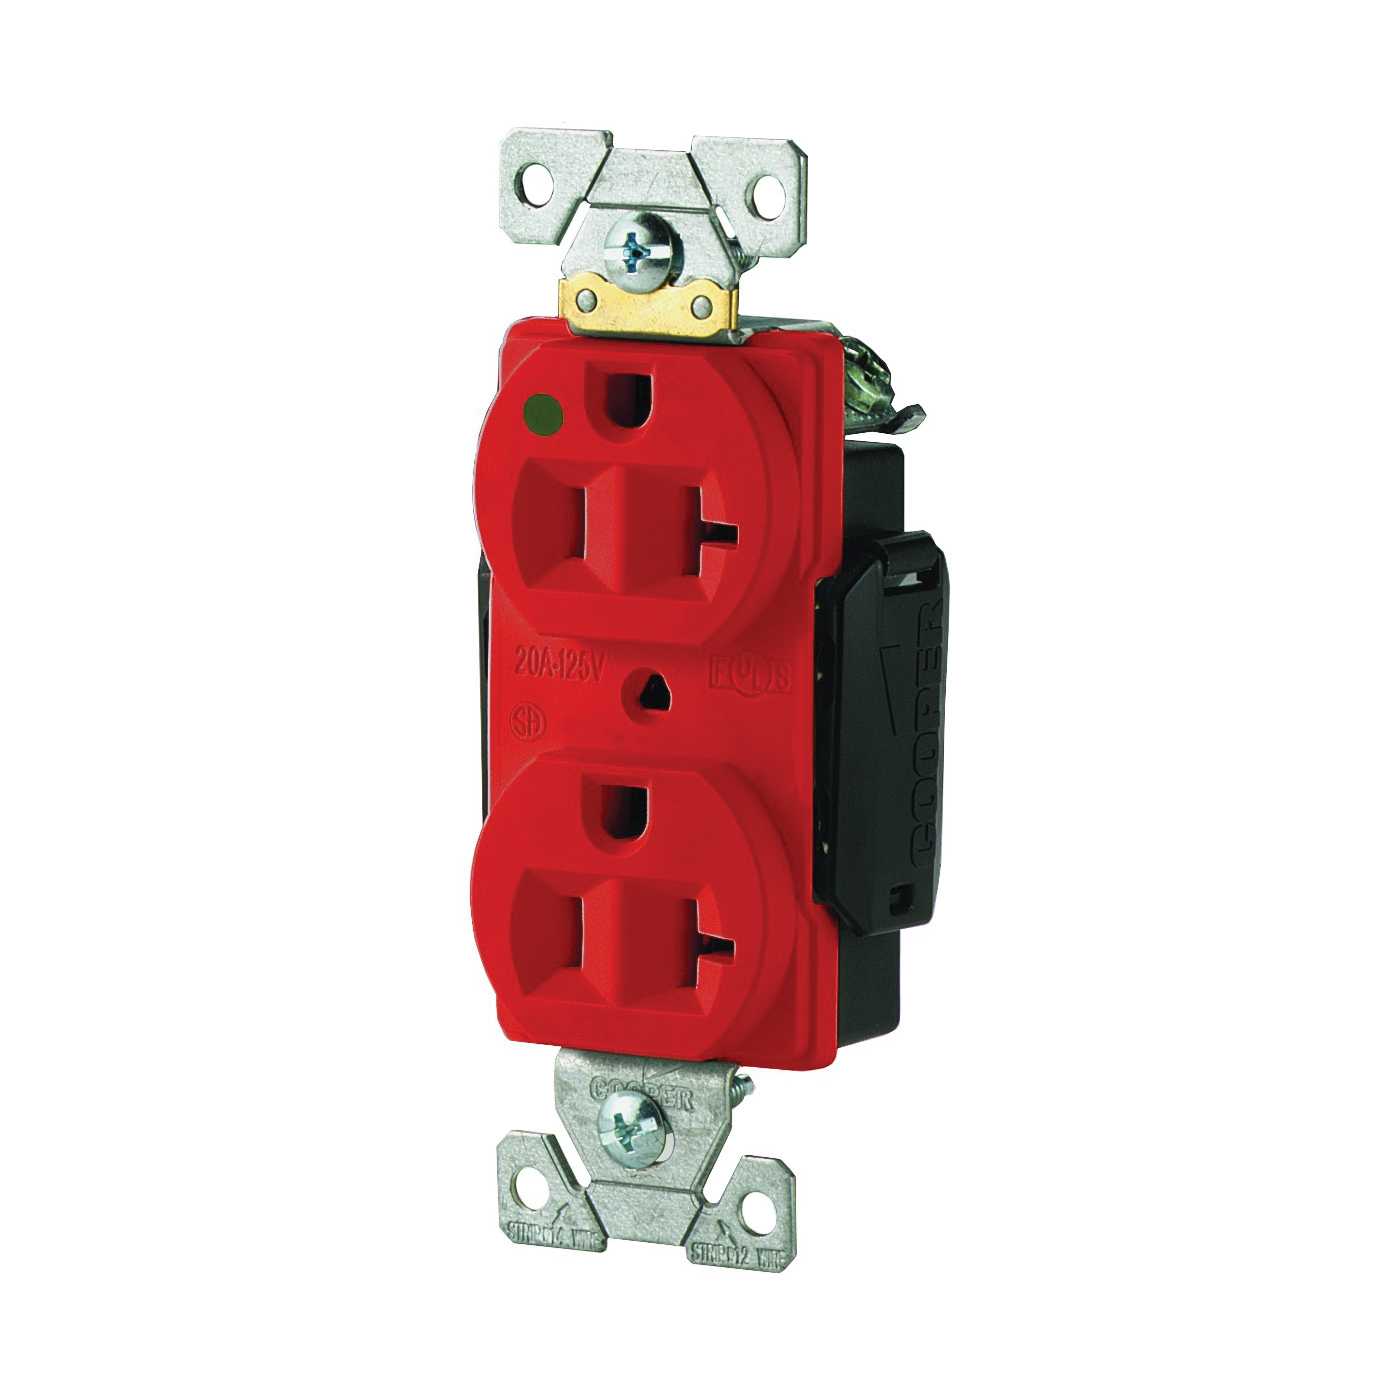 Picture of Eaton Wiring Devices AH8300RD Duplex Receptacle, 2-Pole, 20 A, 125 V, Back, Side Wiring, NEMA: 5-20R, Red